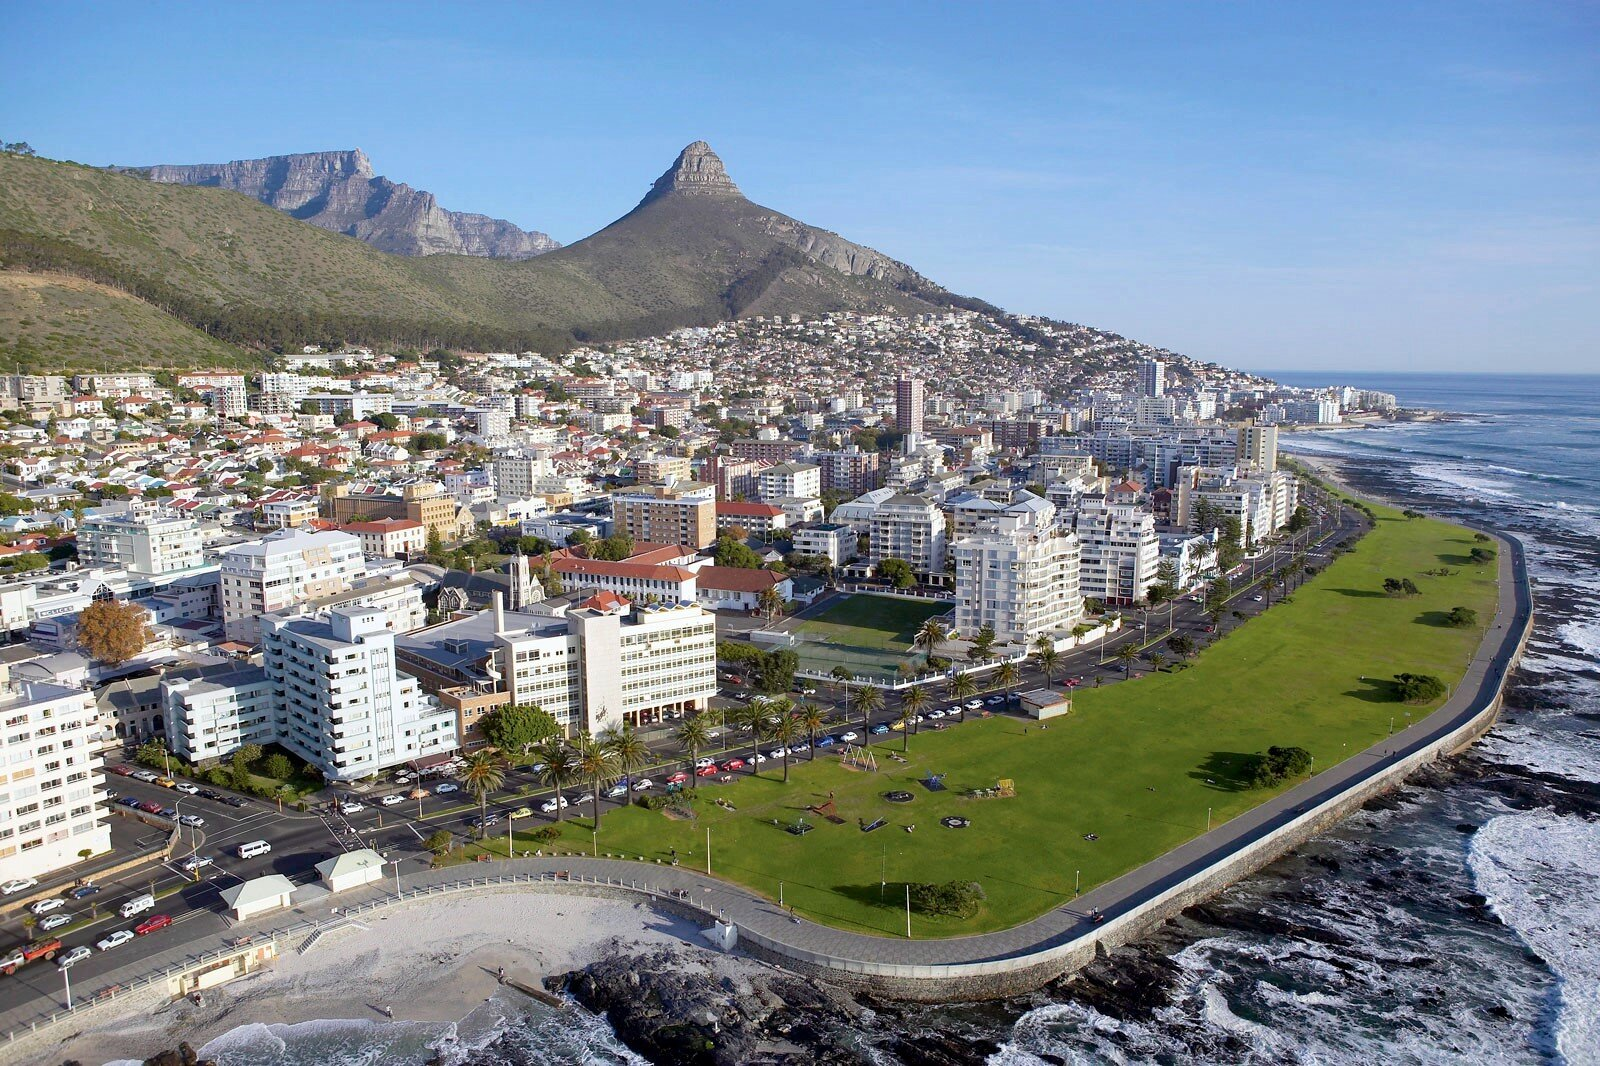 GQC Cape Town, South Africa - Coming in 2021